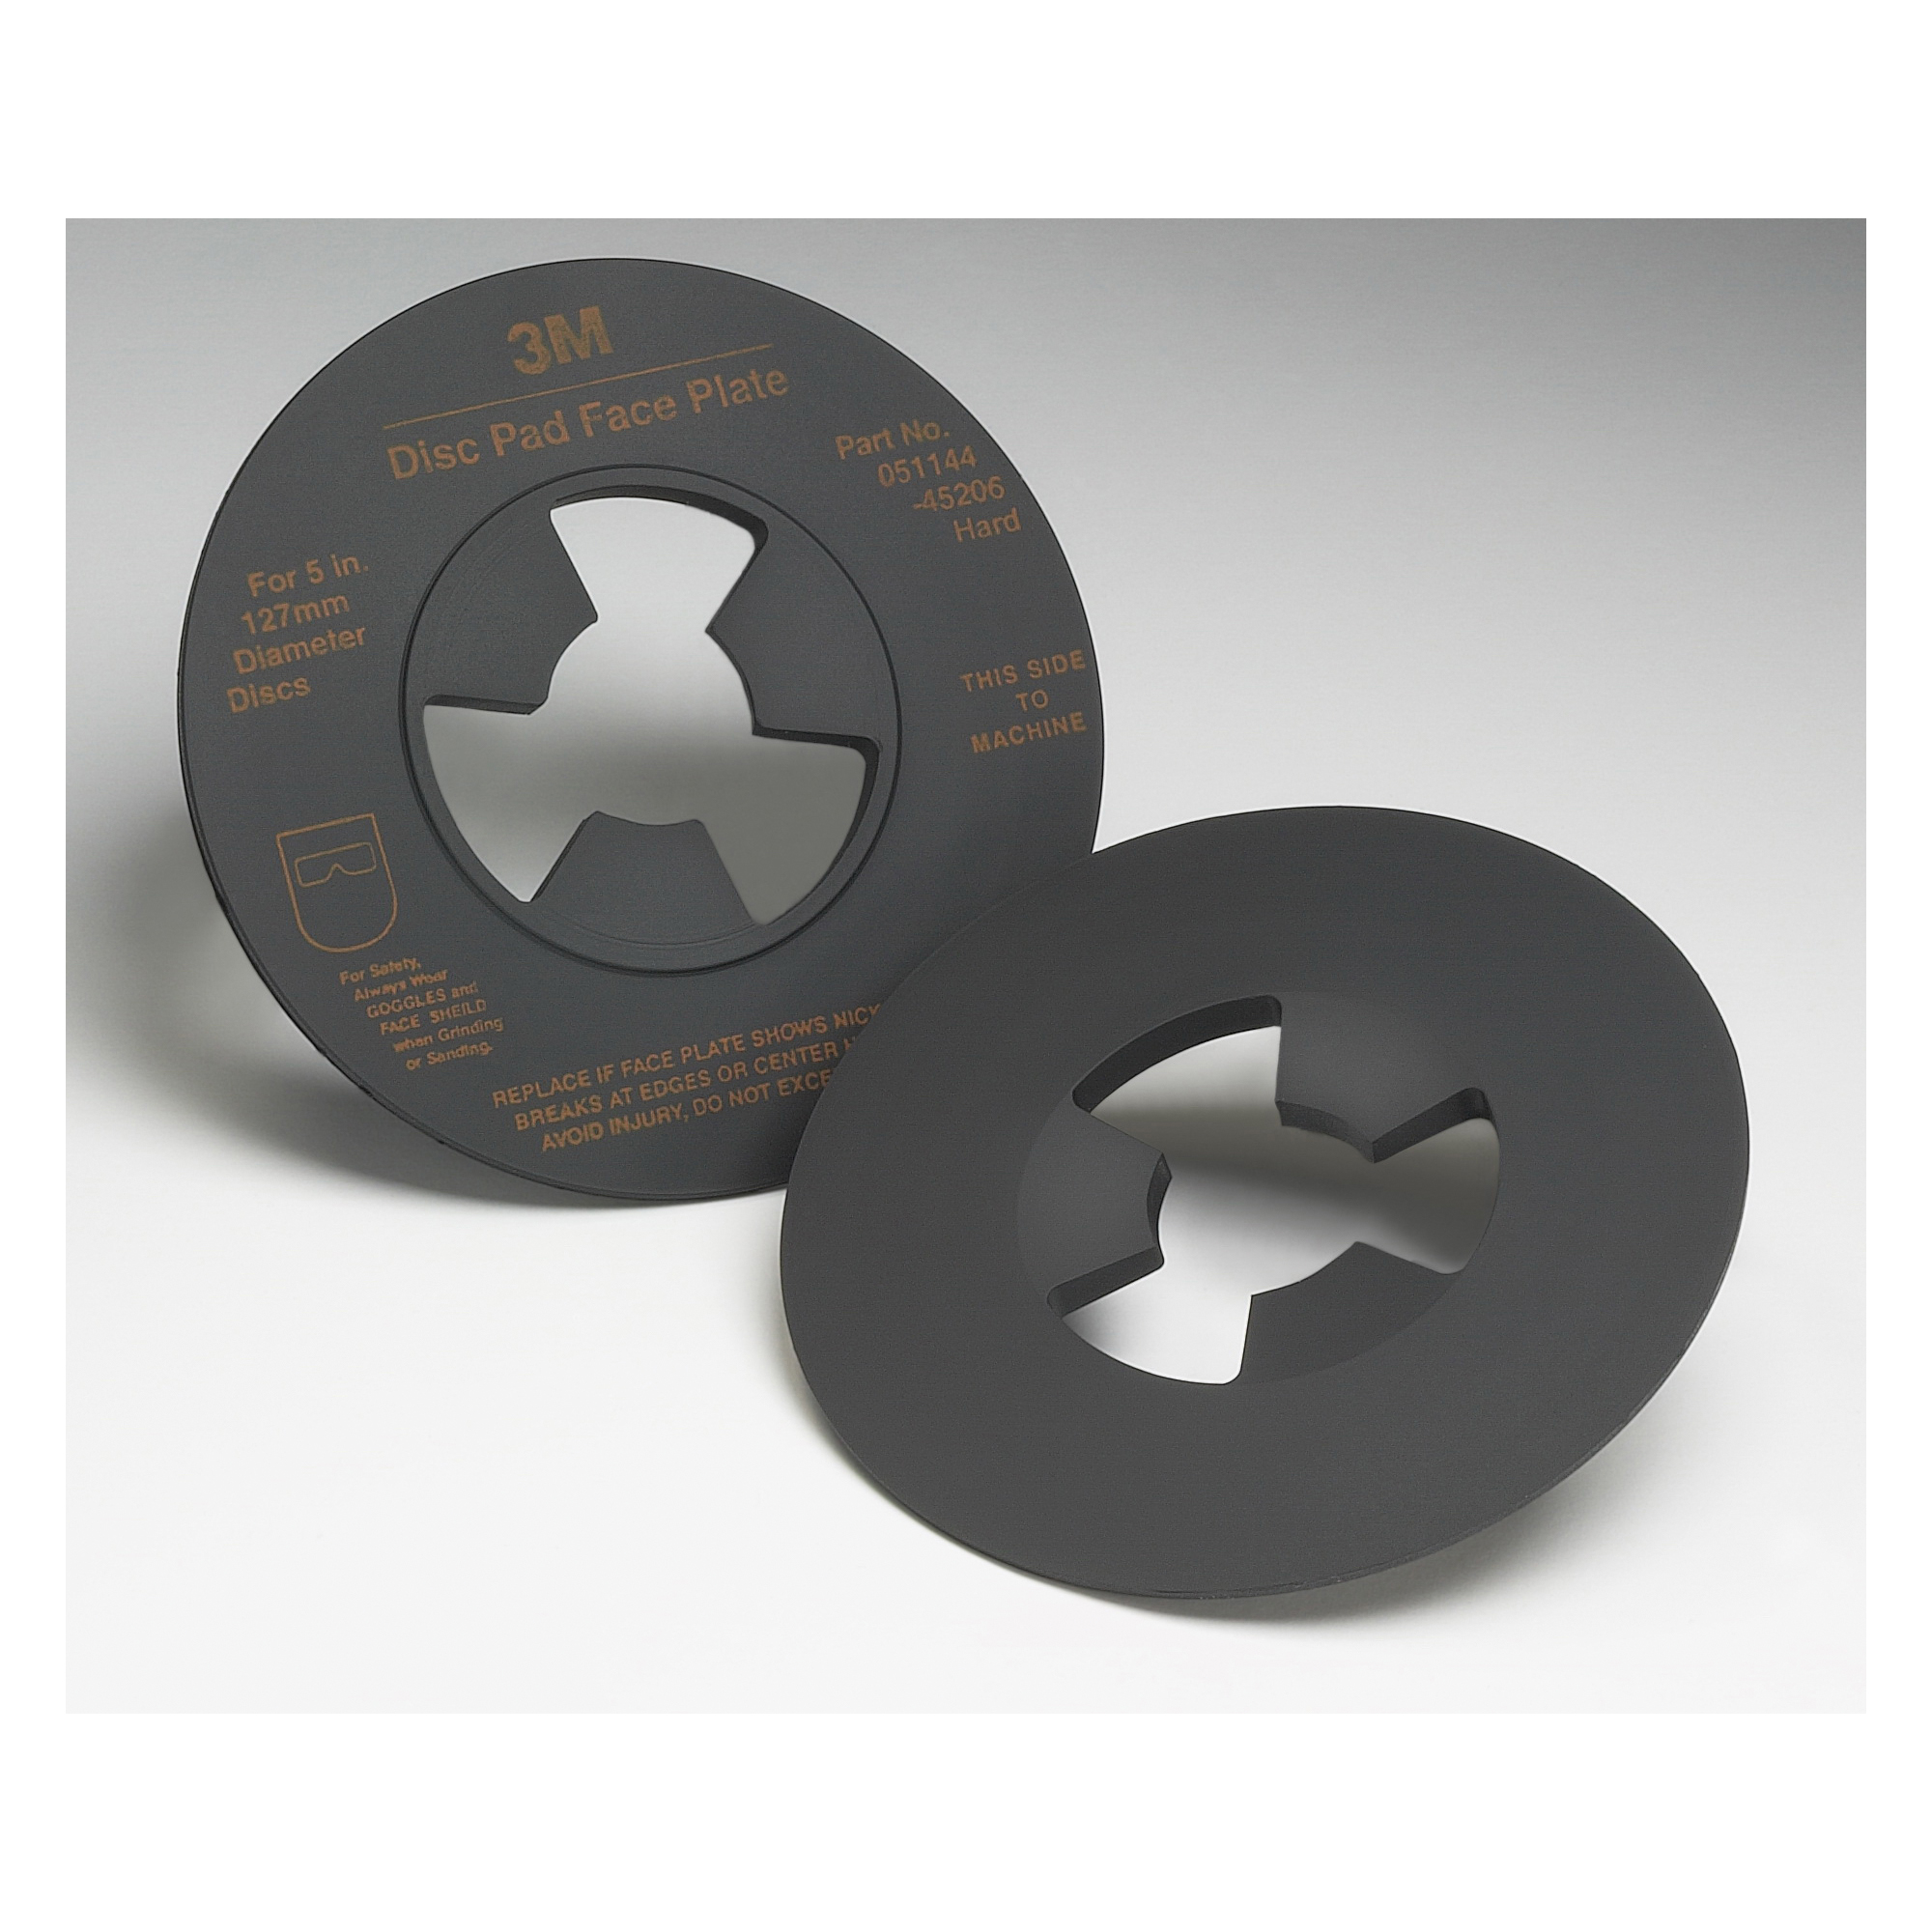 3M™ 051144-14270 Hard Density Smooth Disc Pad Face Plate, 4-1/2 in W/Dia, For Use With 2-1/2 in Disc Pad Hub, Right Angle Grinders and Rotary Sanders